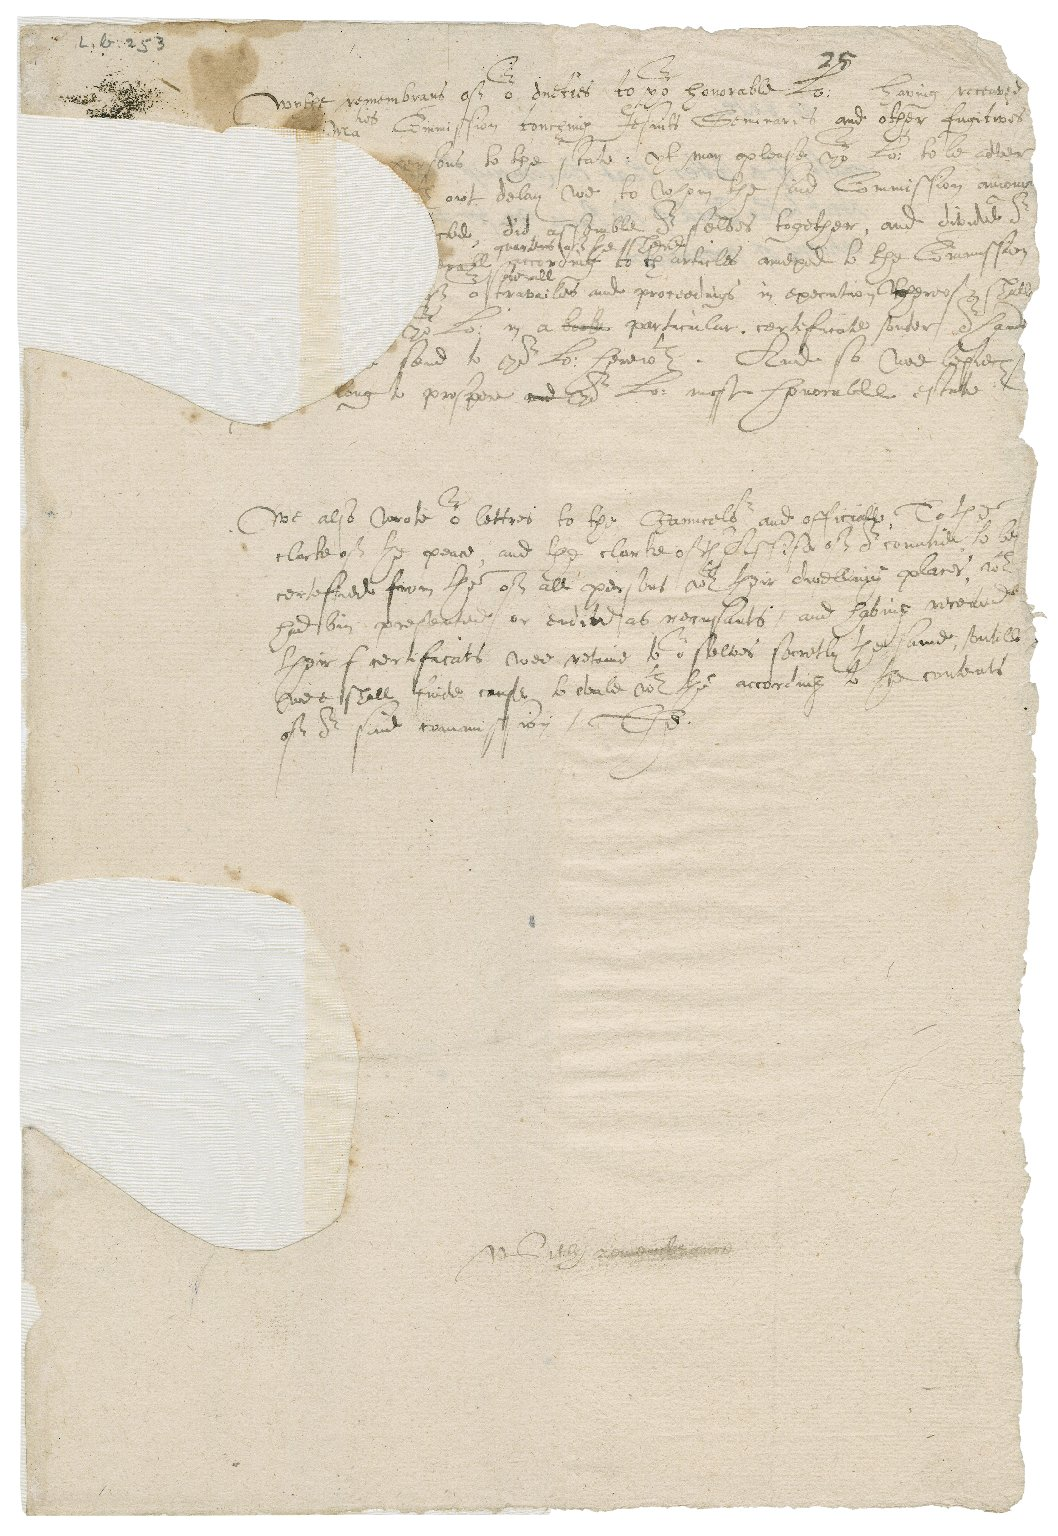 Surrey, England. Commission concerning Jesuits, seminaries, and recusants. Letter. To the Privy Council.